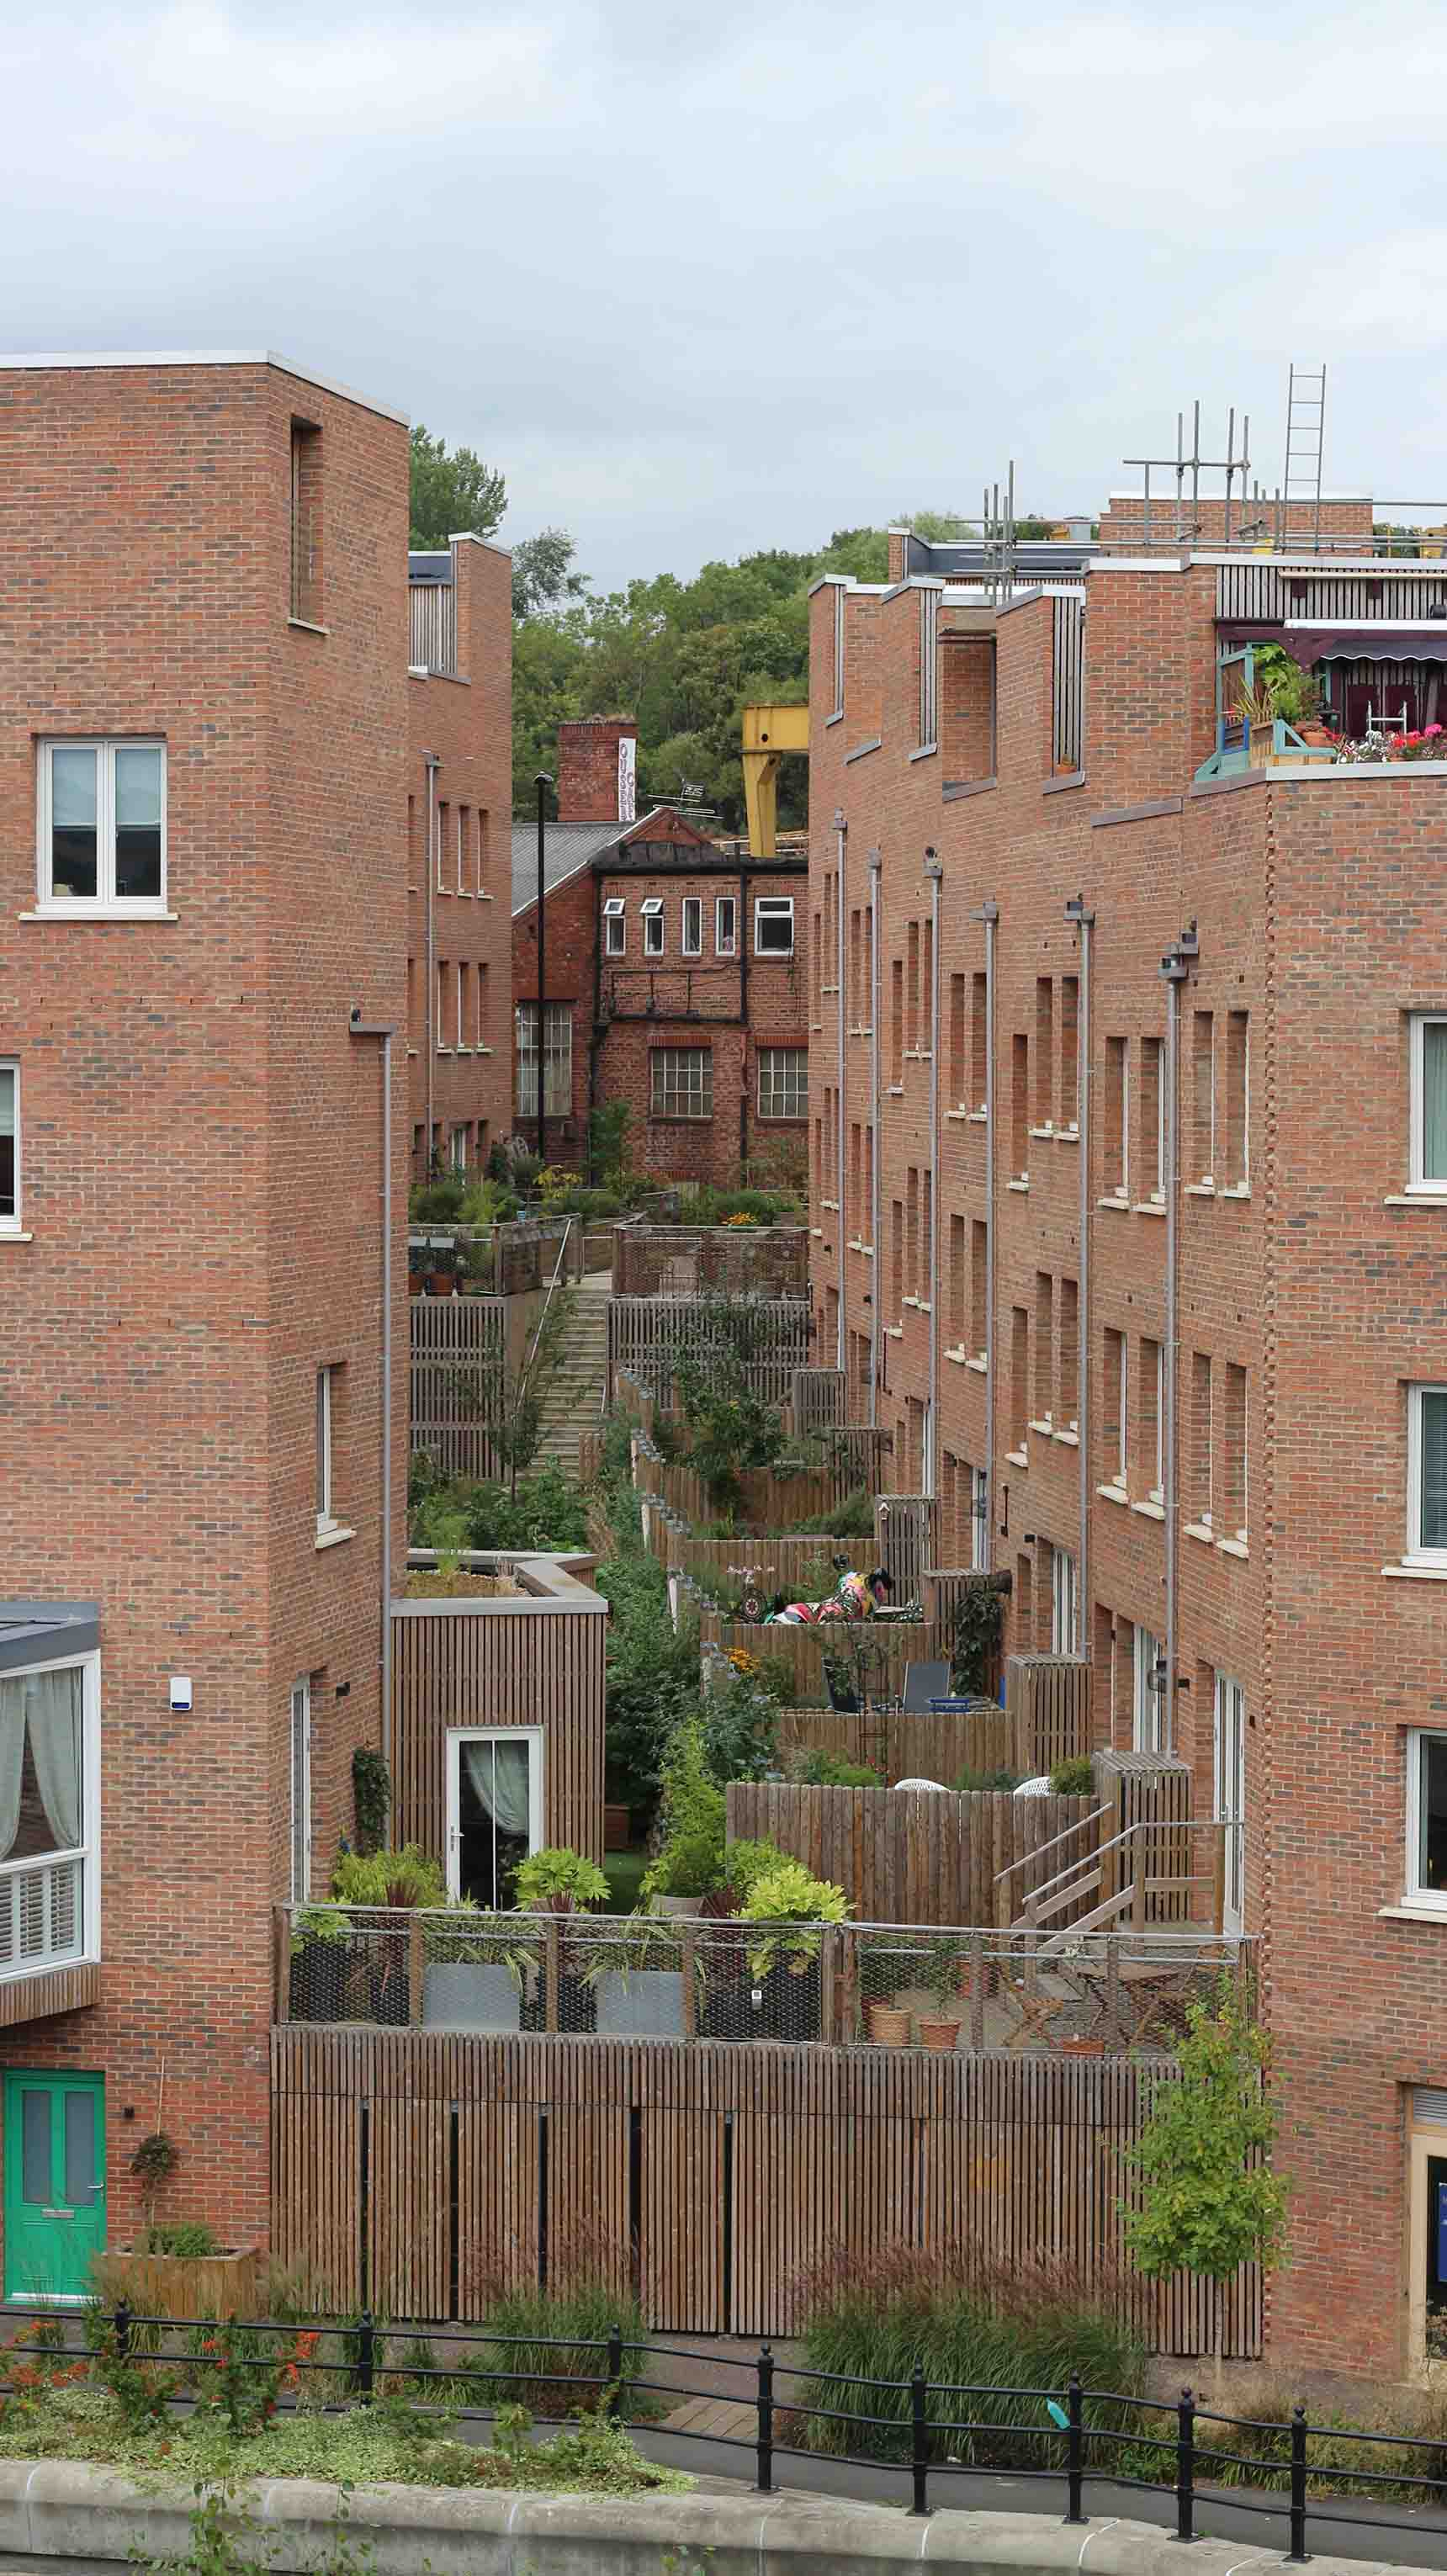 Back gardens step up the steep Ouseburn valley.